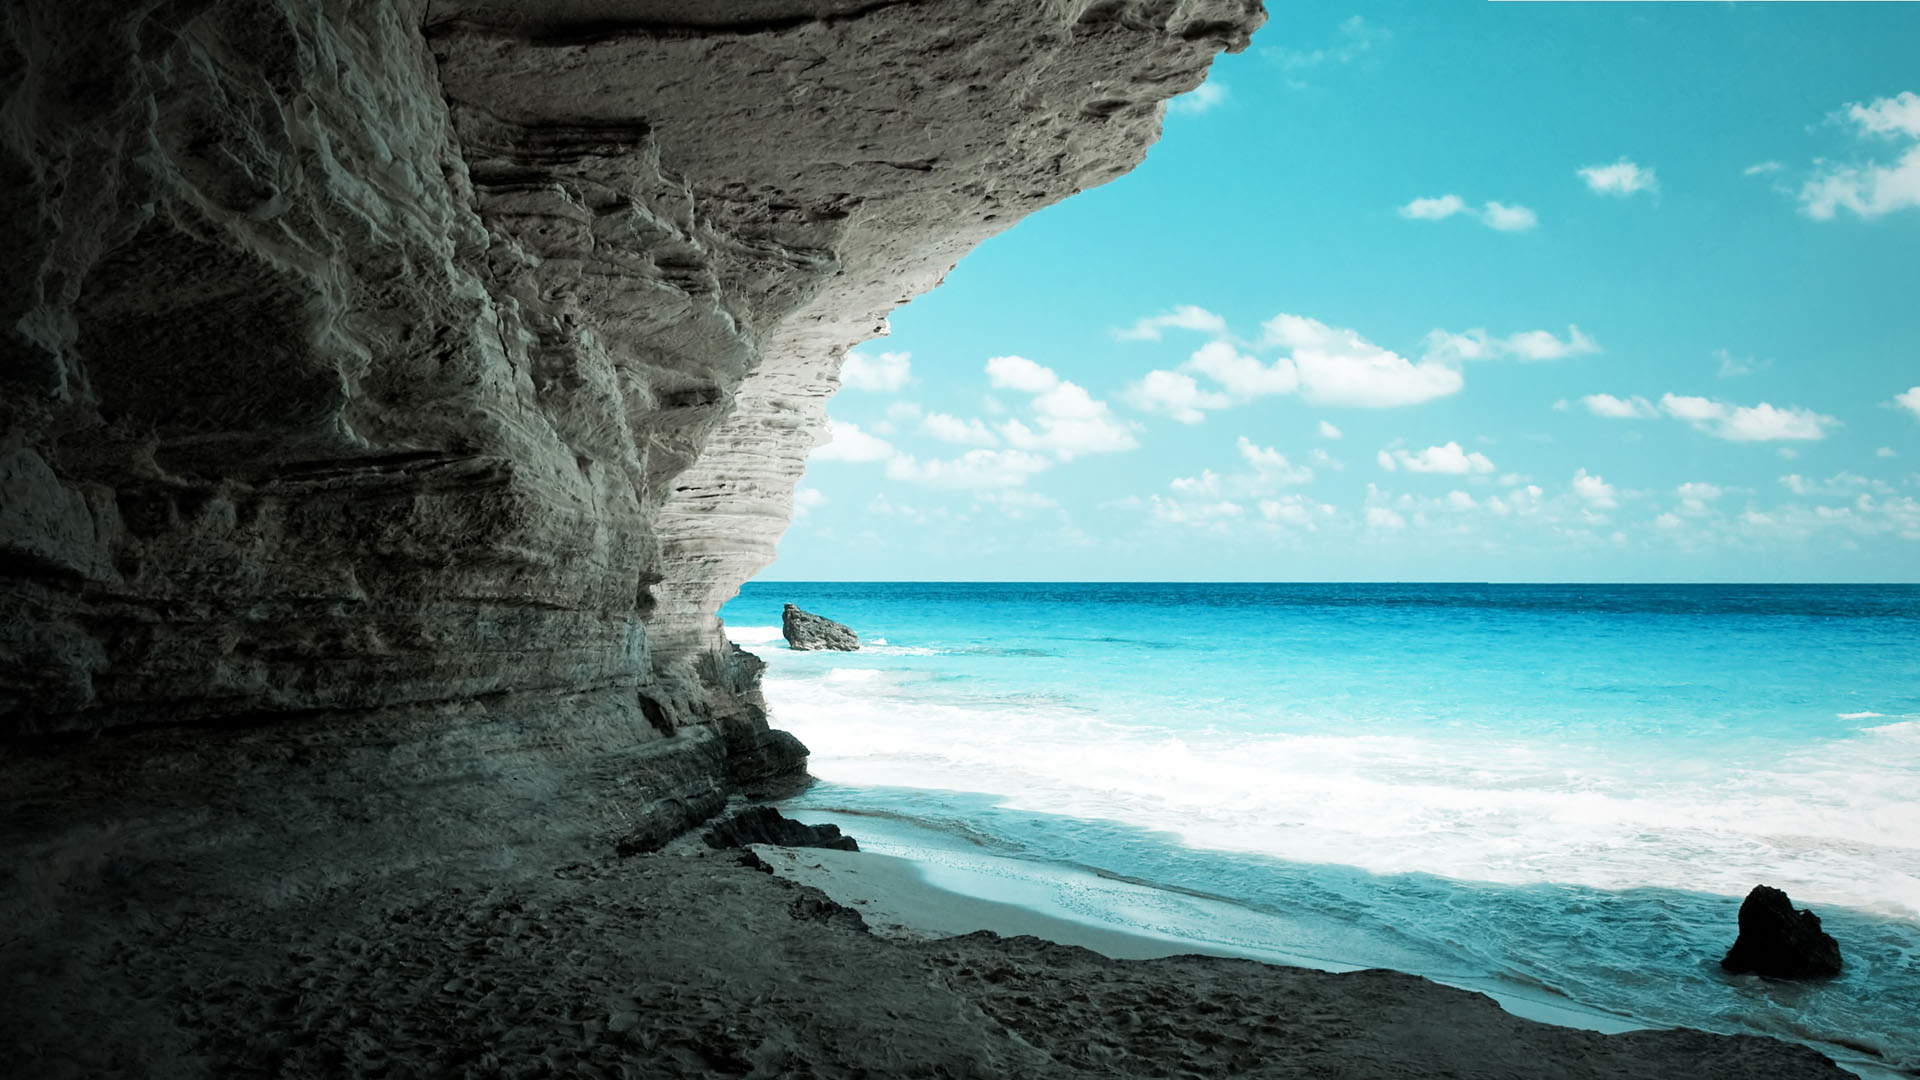 Amazing Full Hd Wallpaper Cave On The Beach Wallpaper Natural